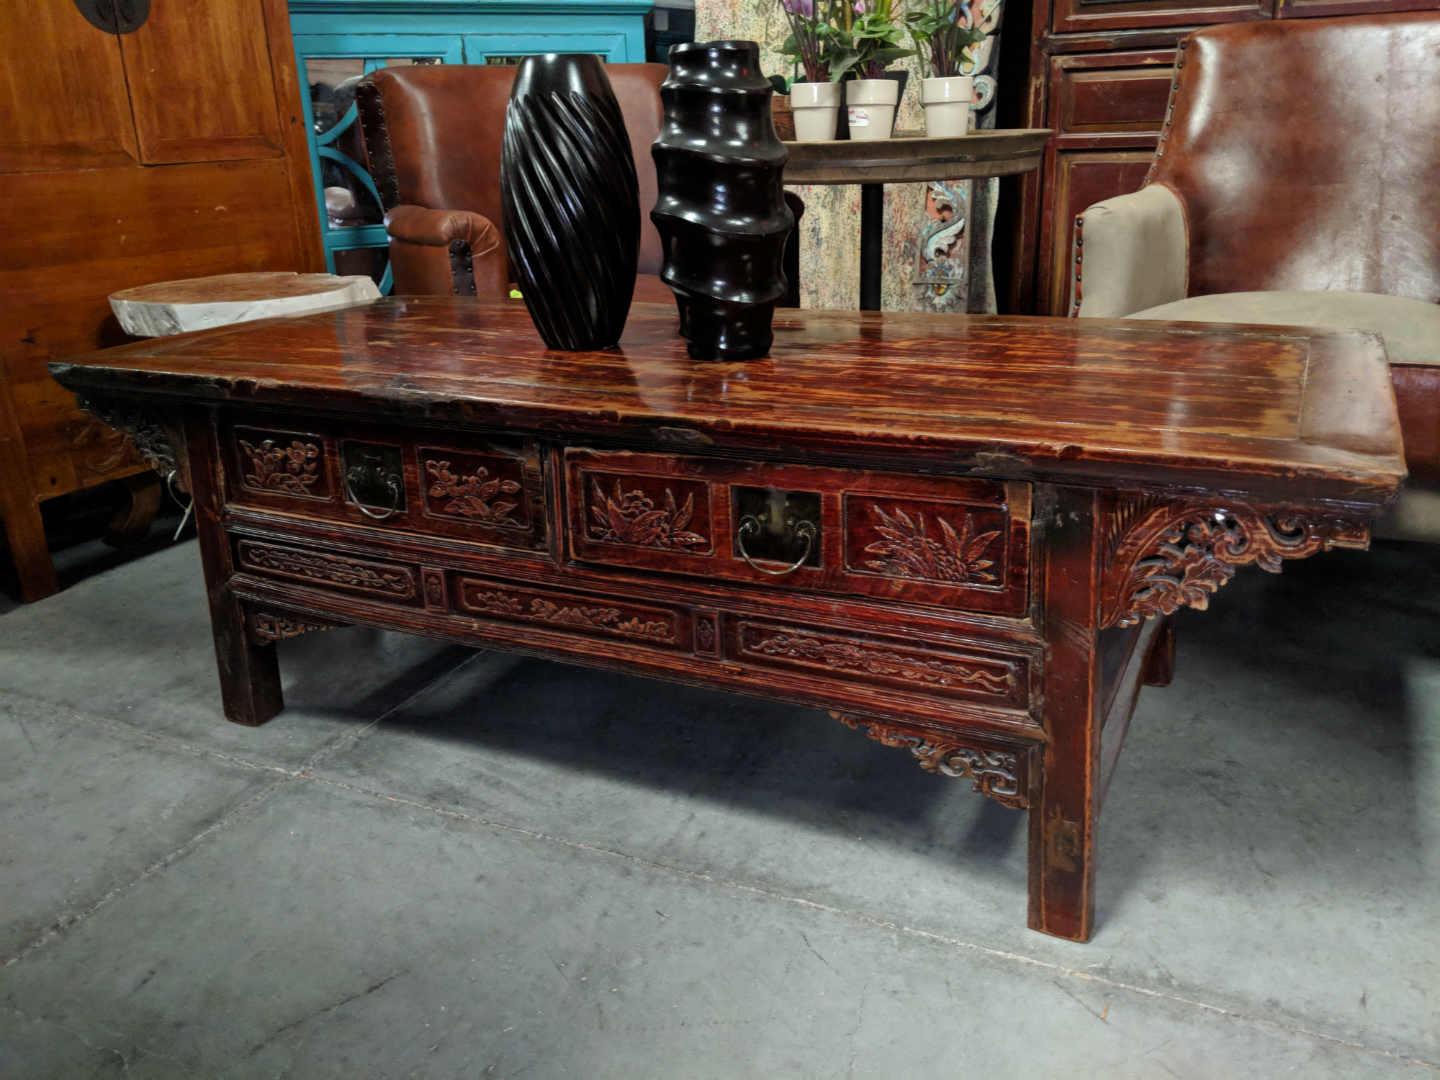 Antique Coffee Table.Decor Direct Wholesale Warehouse Coffee Tables And Antique Trunks